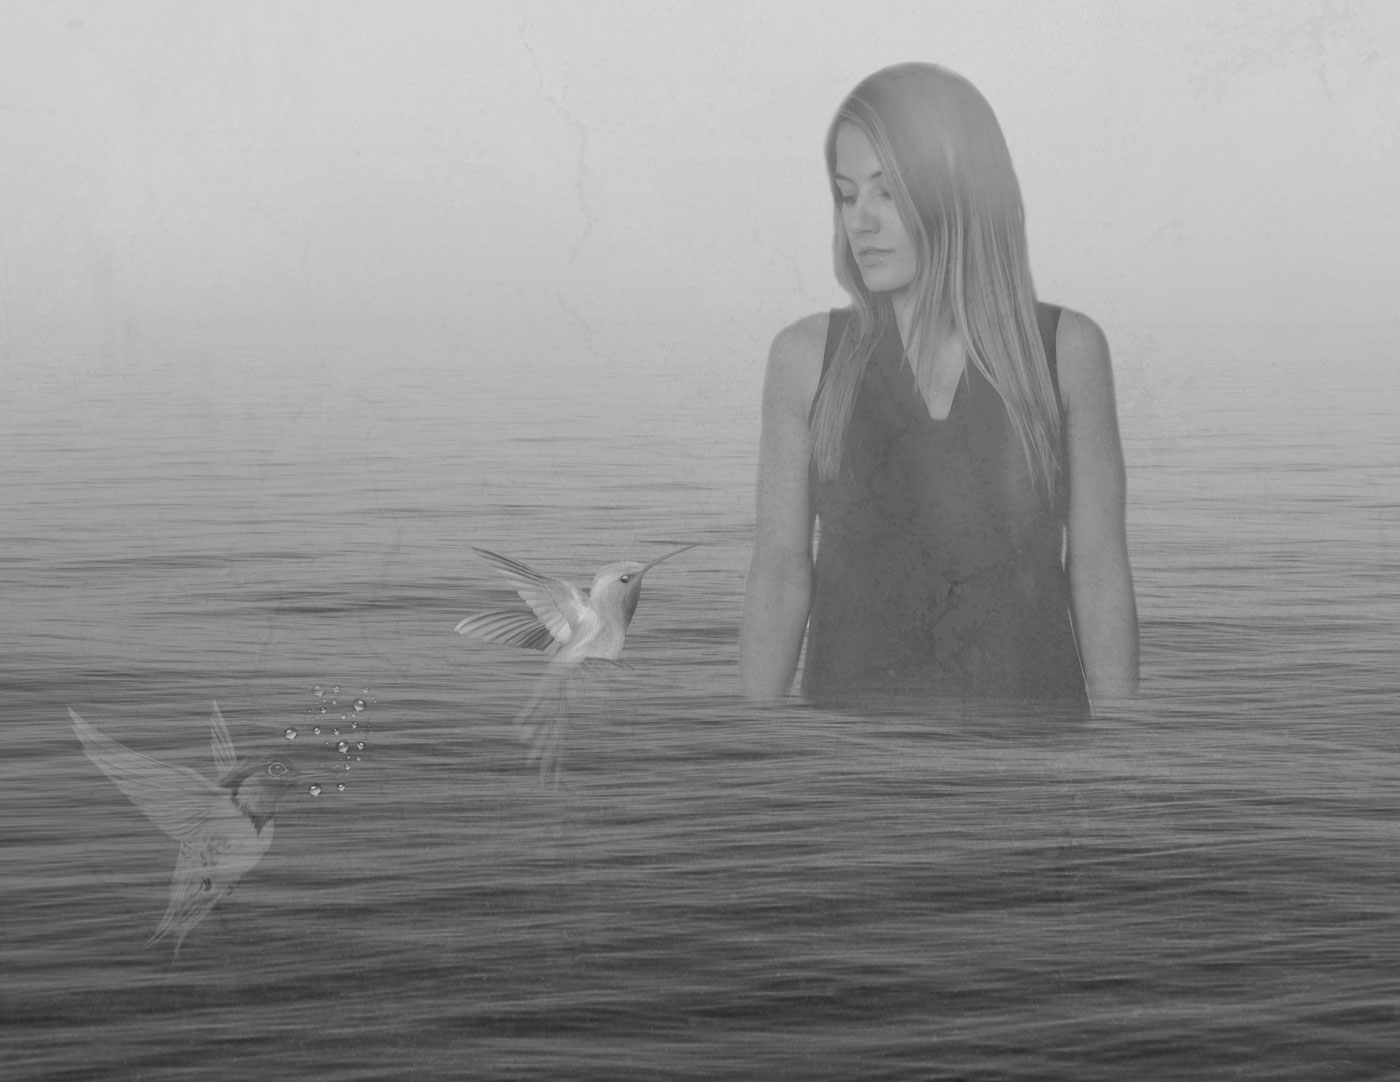 A girl stands waist-deep in a foggy ocean, watching as two humming birds seem to drown.